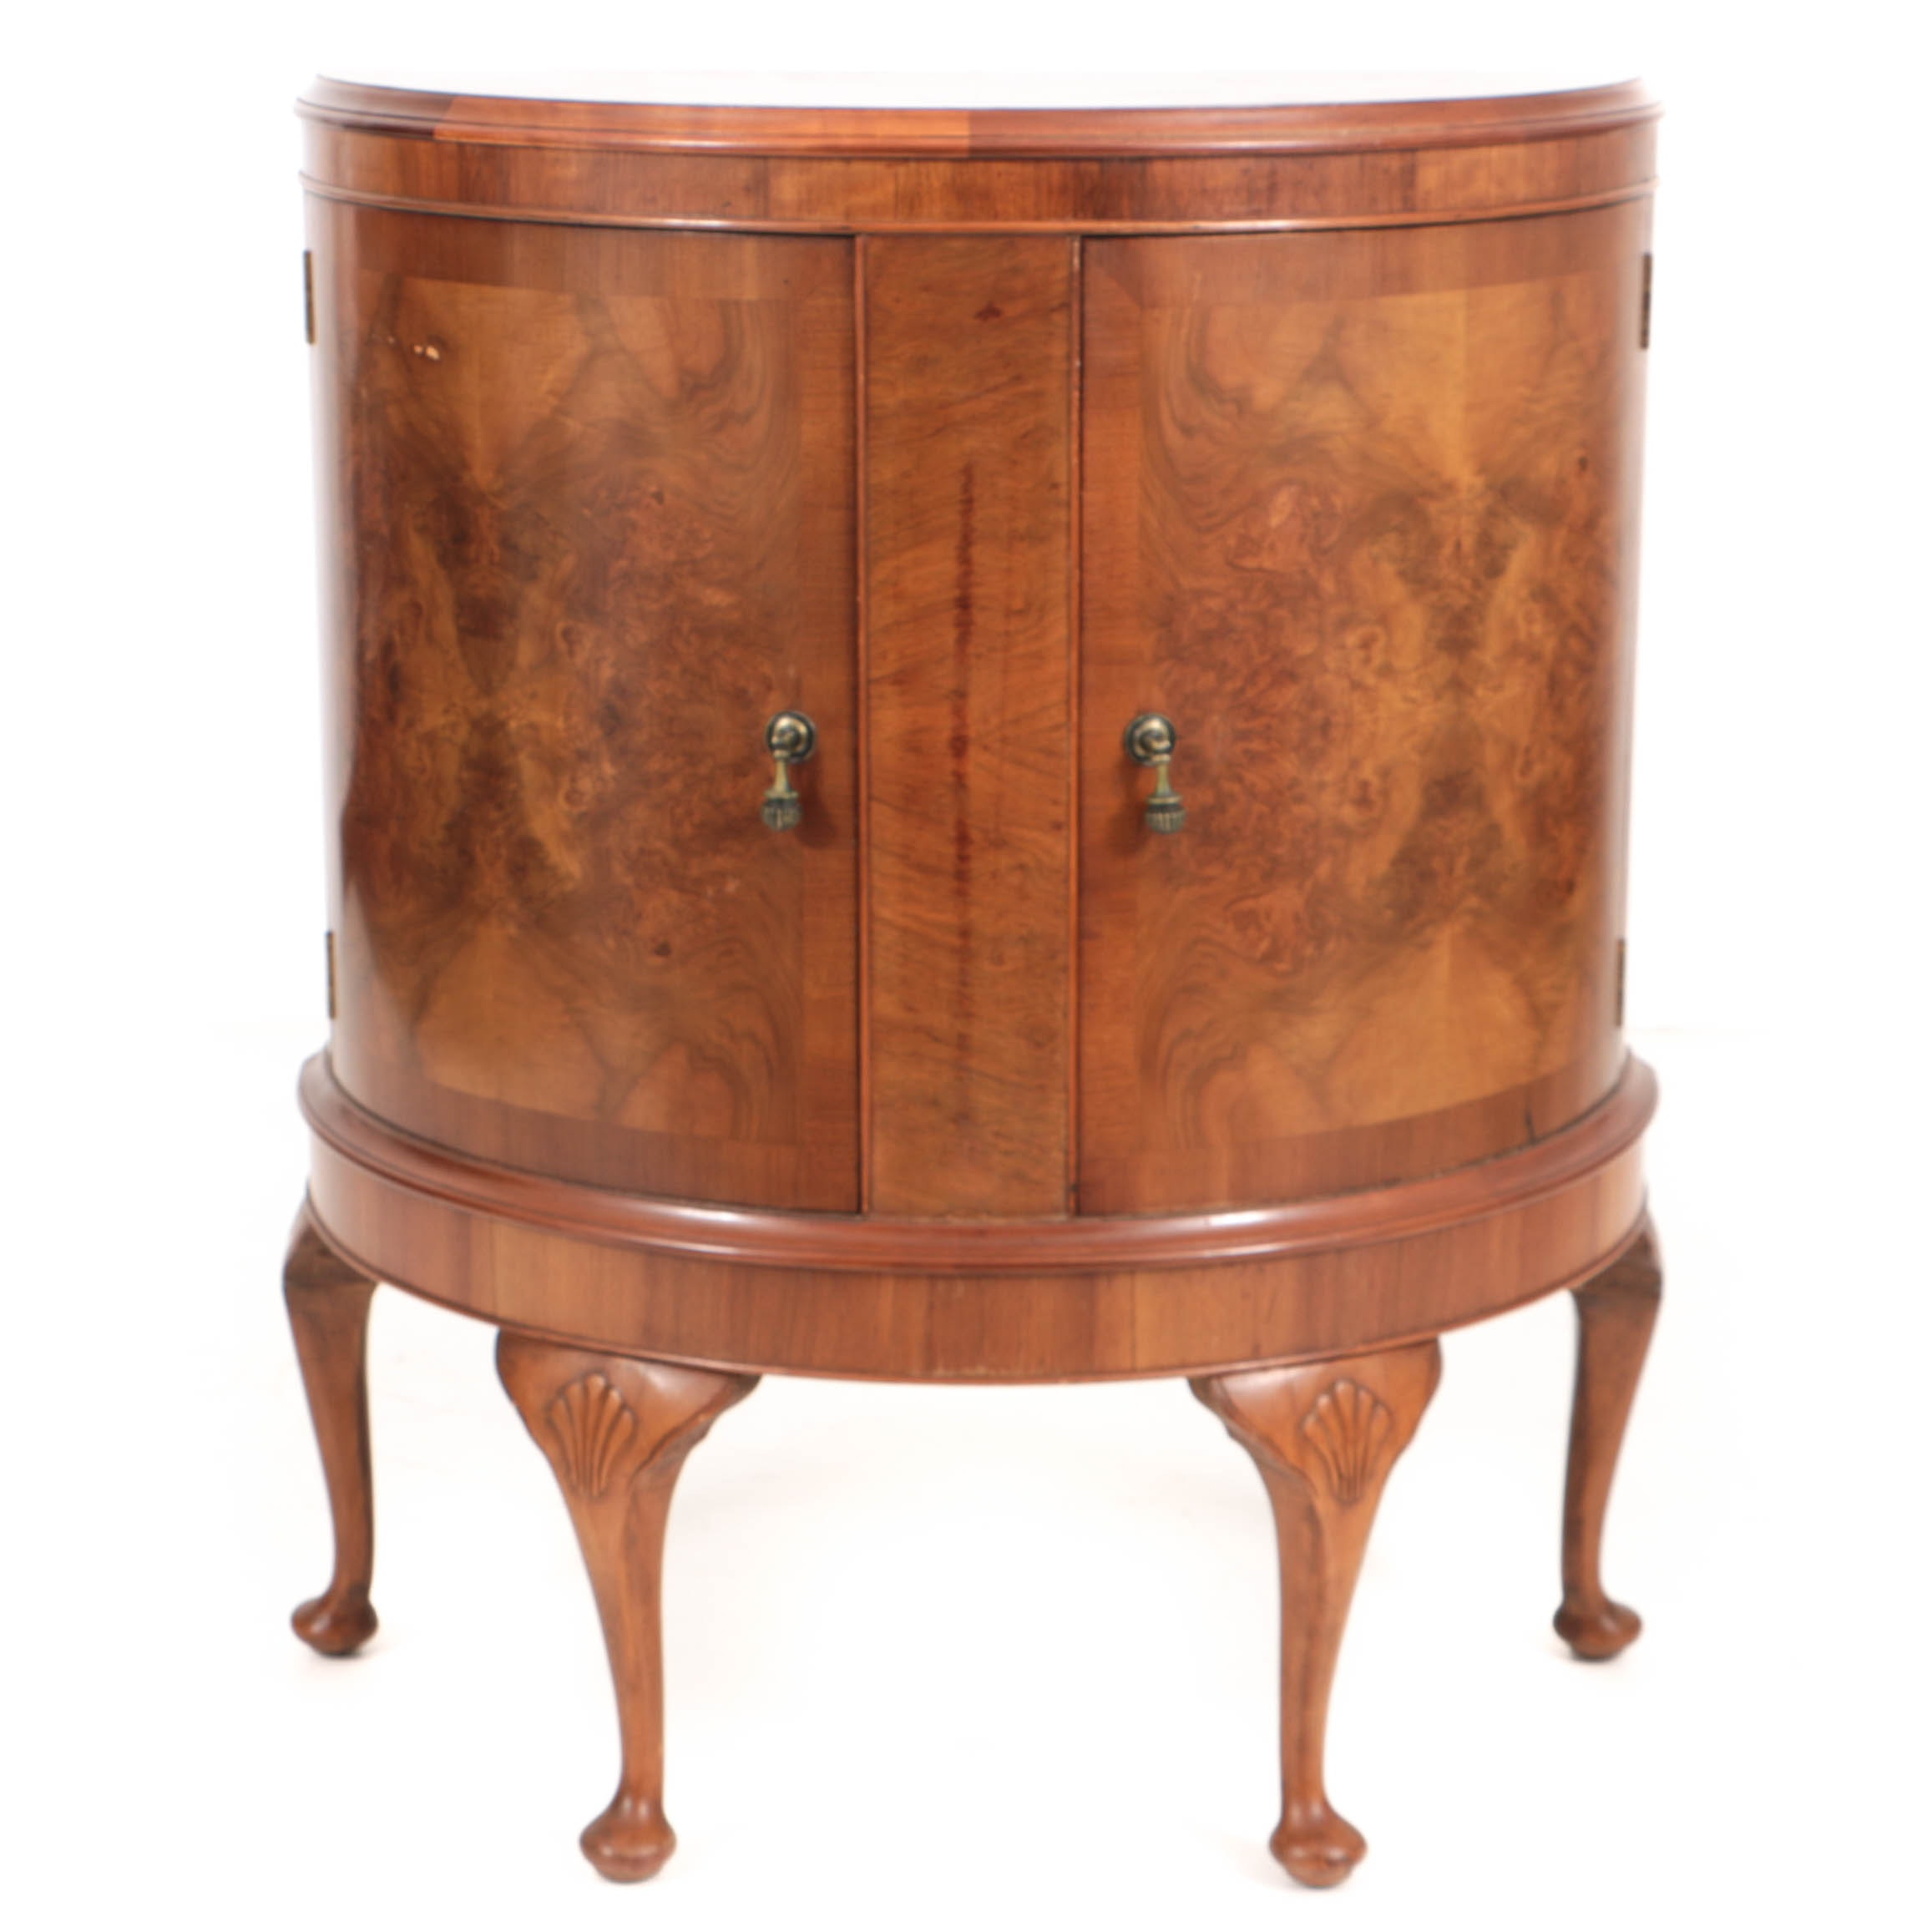 Vintage Queen Anne Style Crossbanded and Burl-Veneered Demilune Cabinet